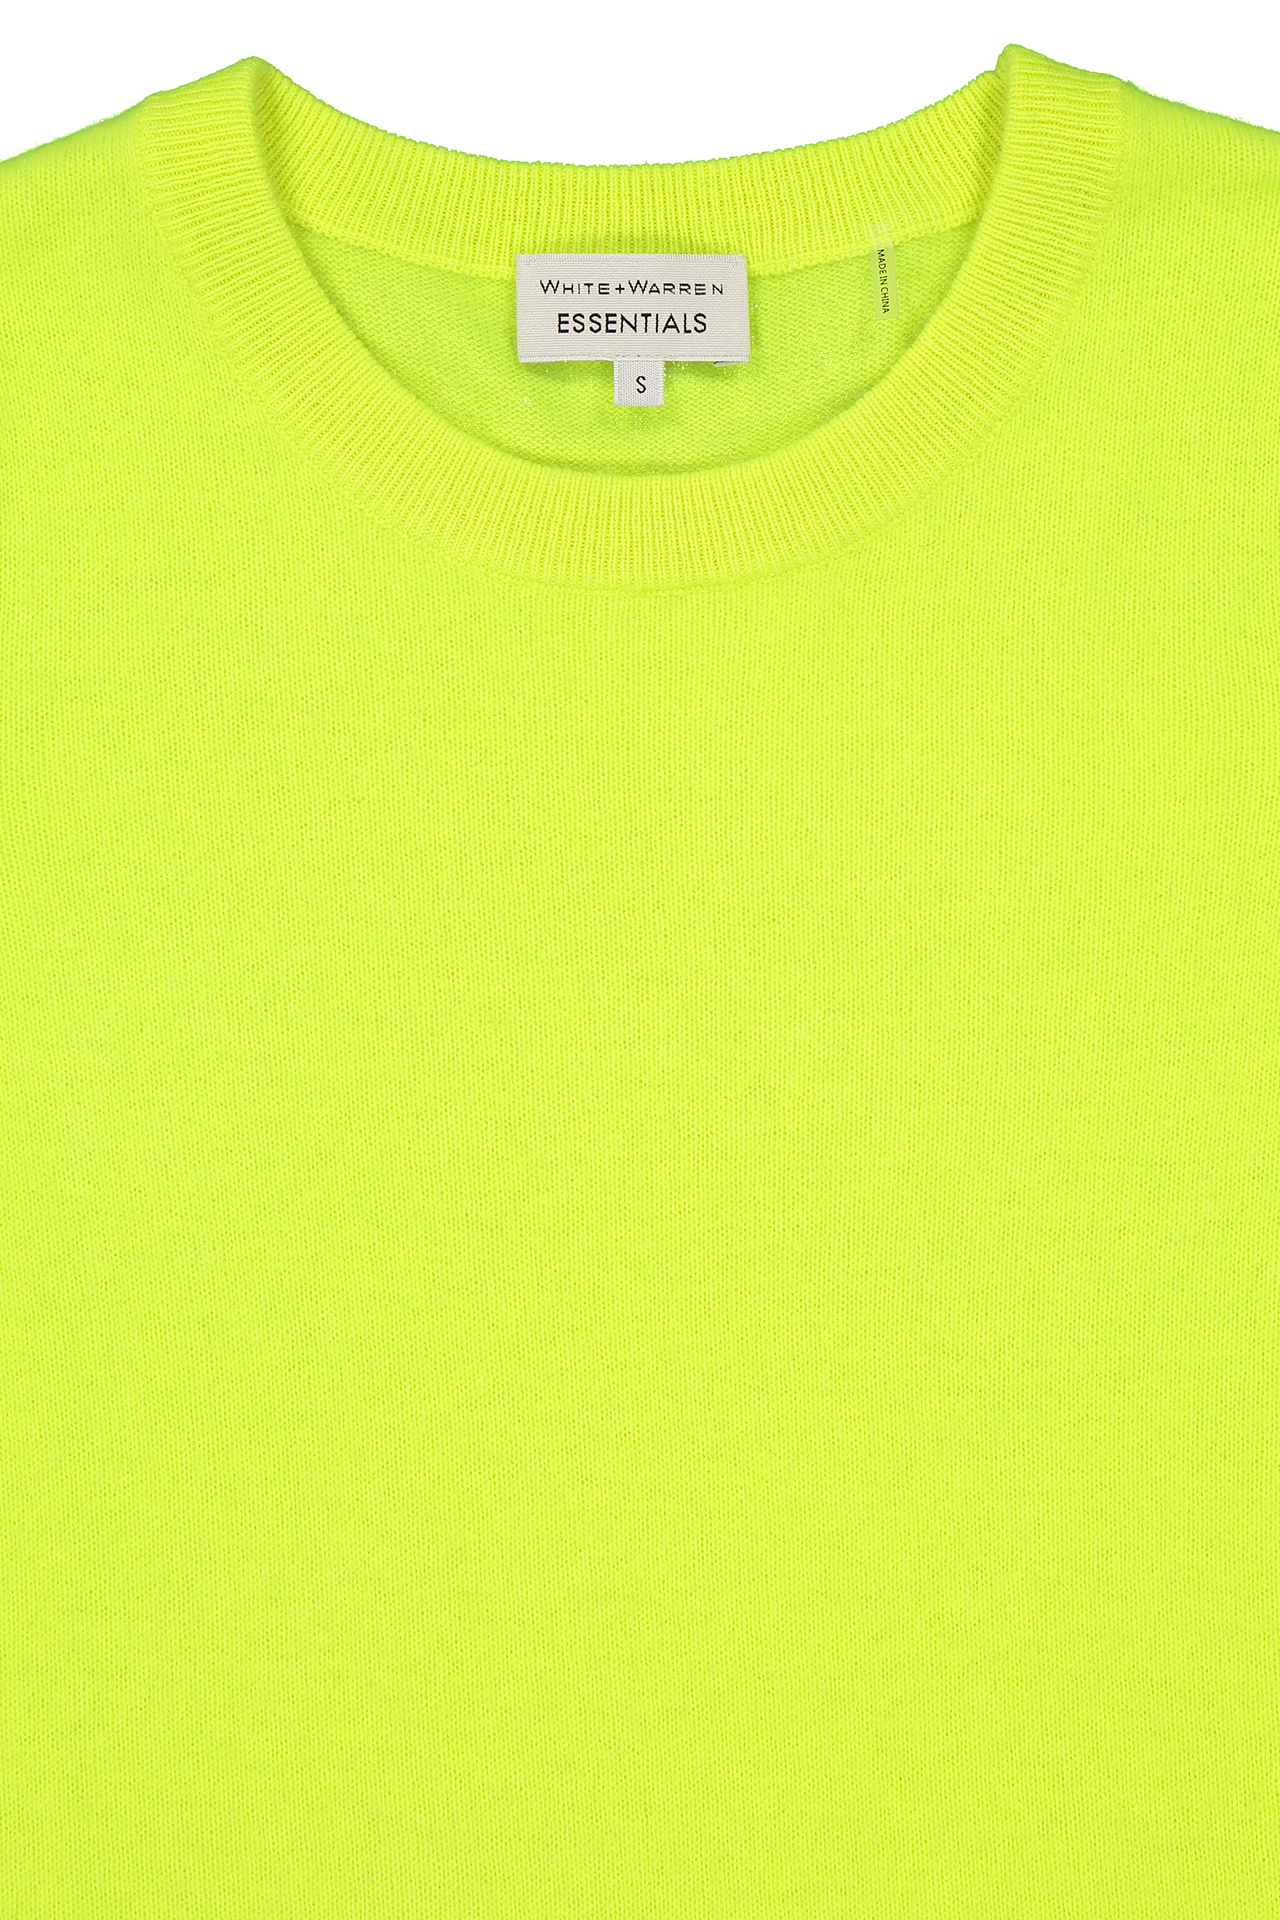 Front neckline detail image of White & Warren Essential Crewneck Sweater Neon Pineapple